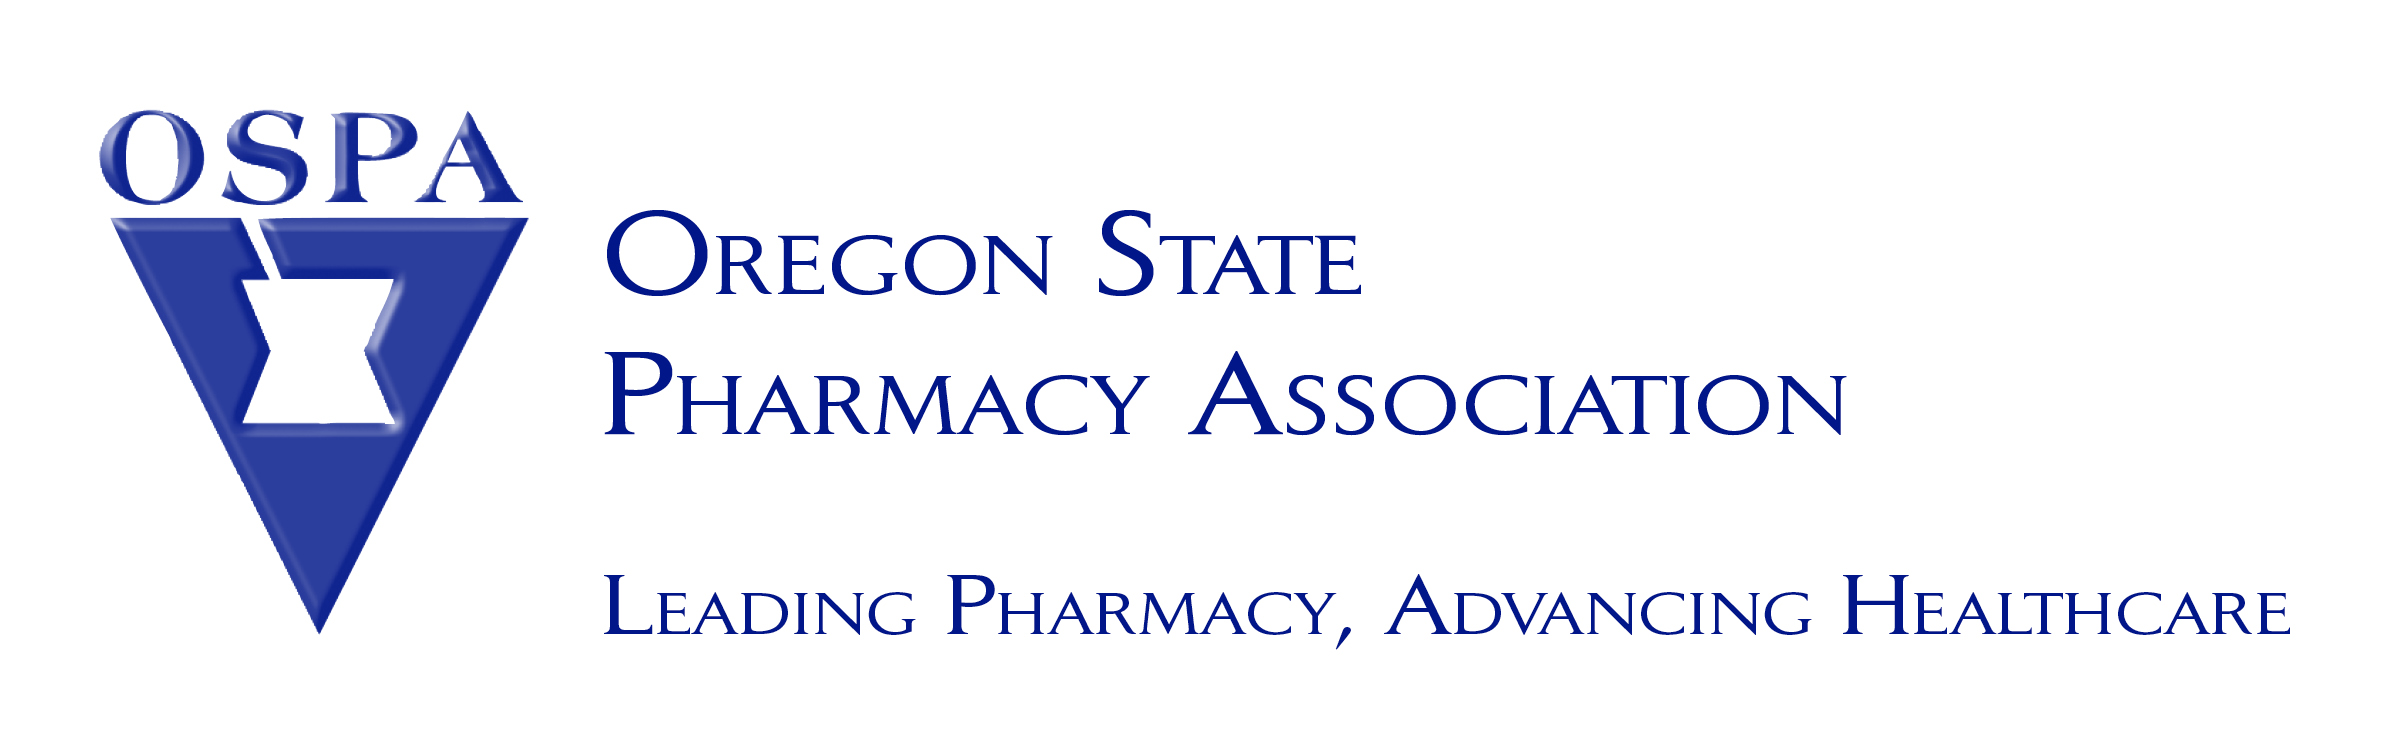 Oregon-State-Pharmacy-Association